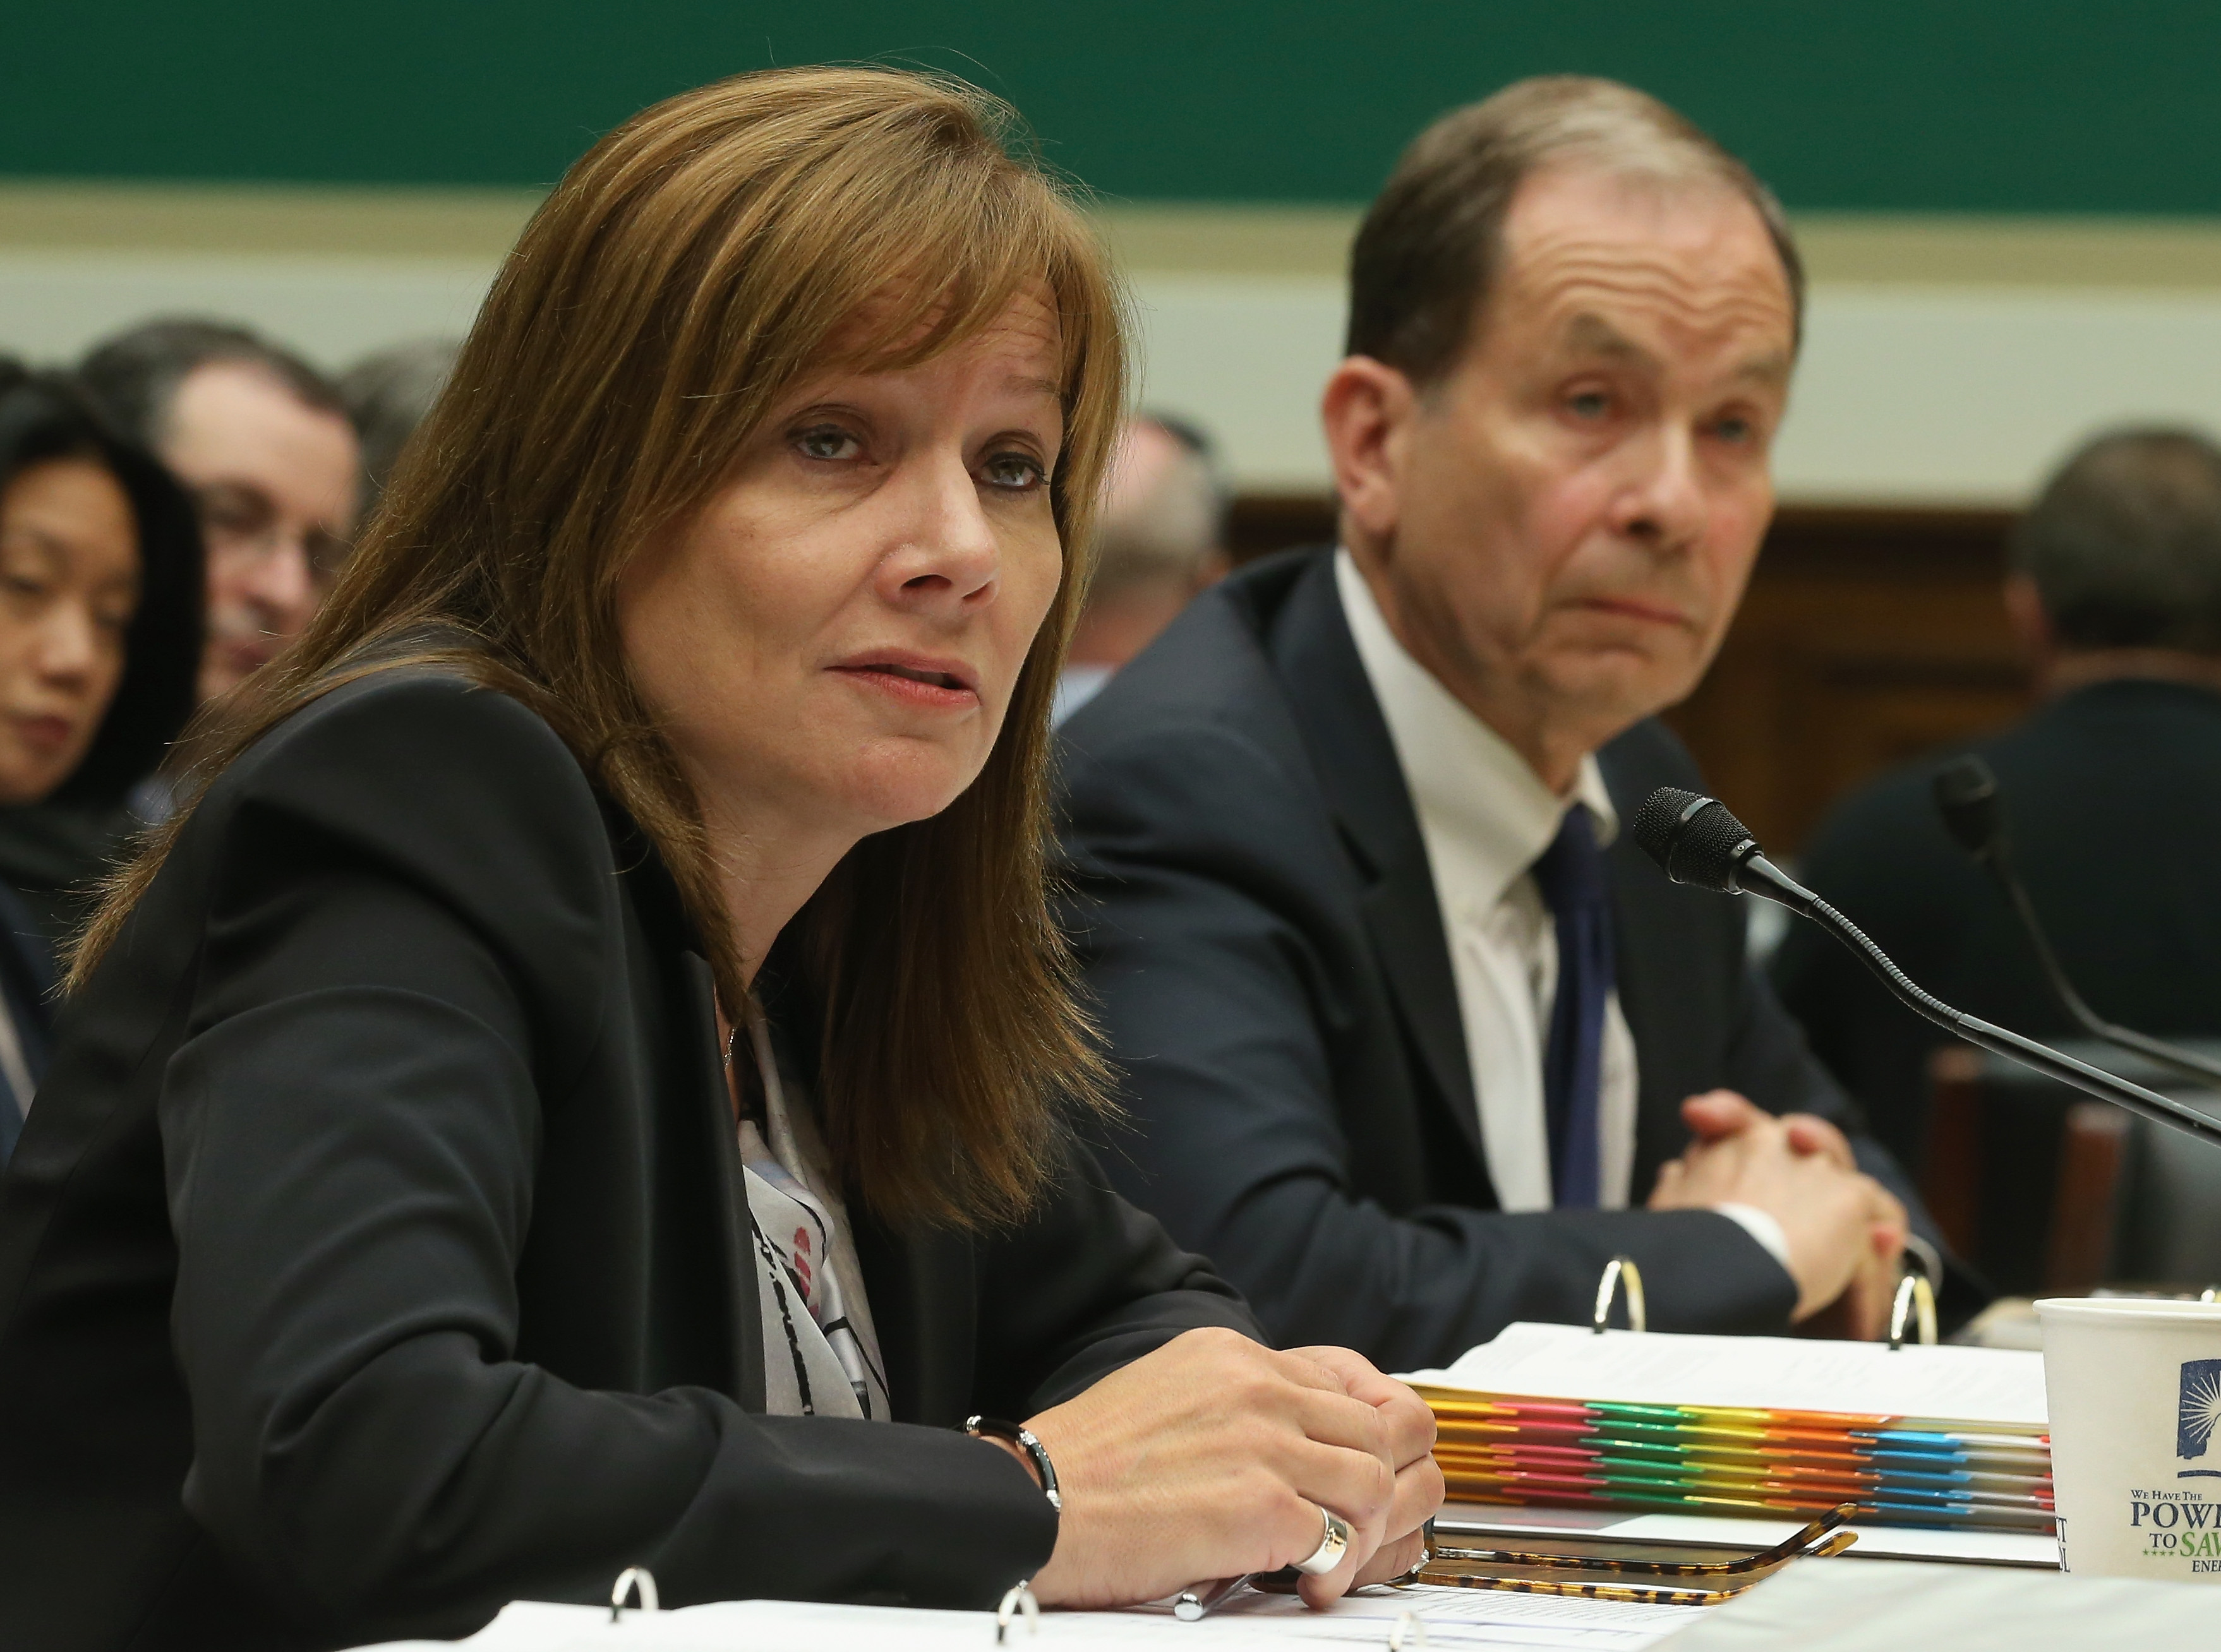 General Motors CEO Mary Barra (L), and Anton Valukas, head of GM's internal recall investigation, field questions while testifying during a House Energy and Commerce Committee hearing on Capitol Hill on June 18, 2014 in Washington, DC.